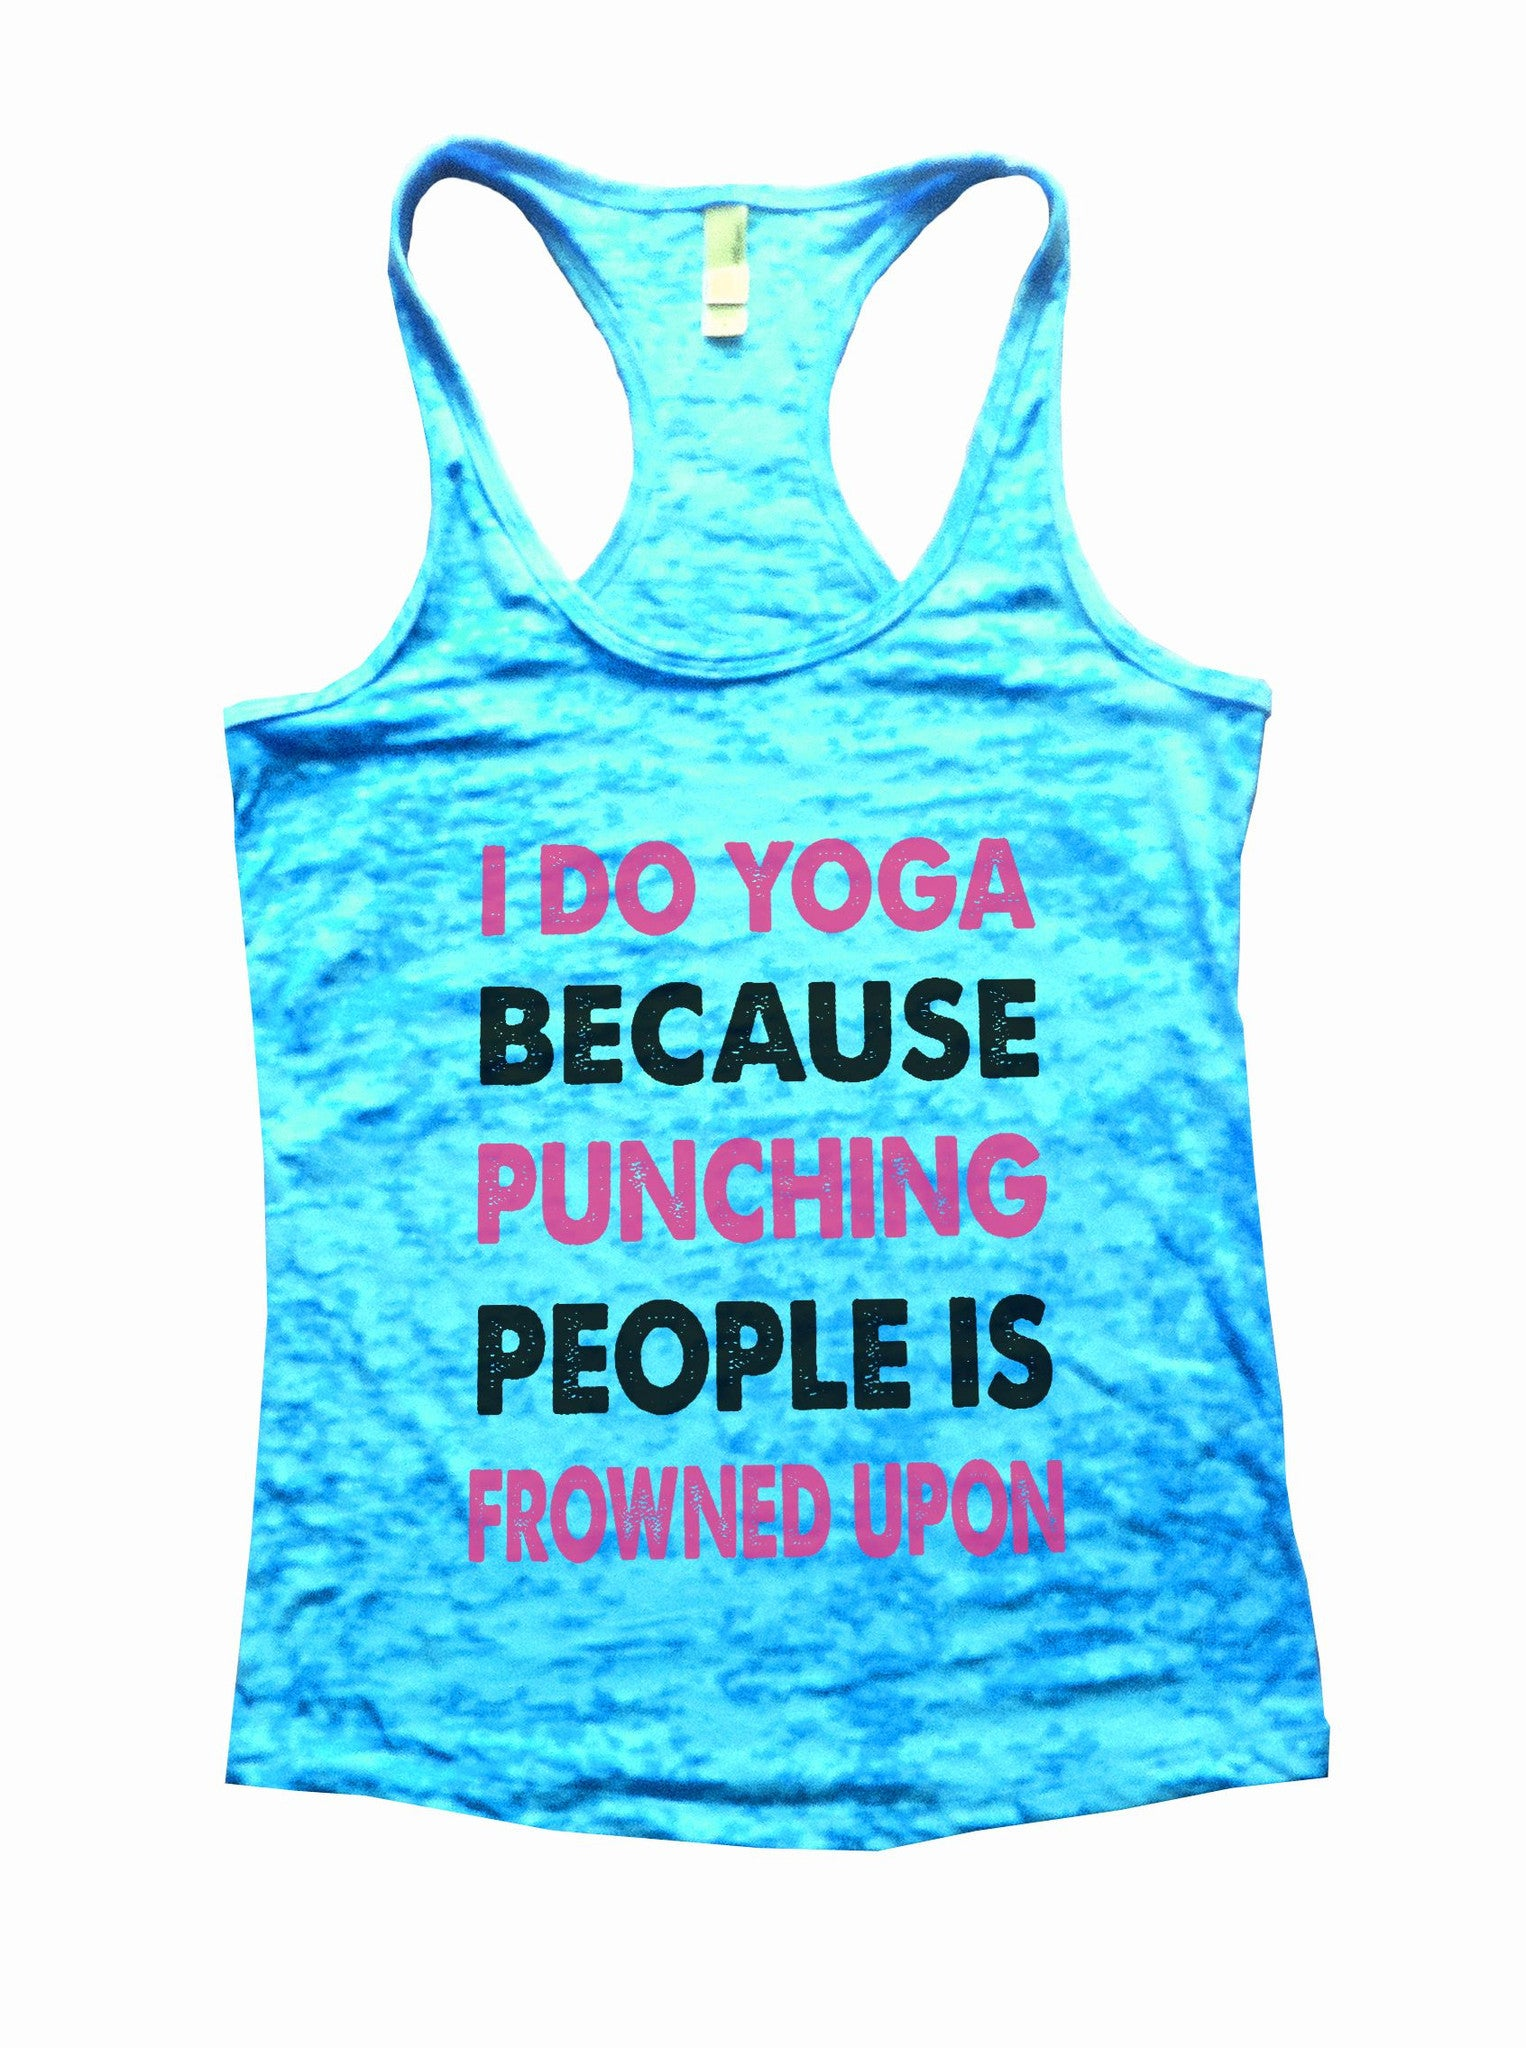 I Do Yoga Because Punching People Is Frowned Upon Burnout Tank Top By BurnoutTankTops.com - 685 - Funny Shirts Tank Tops Burnouts and Triblends  - 1